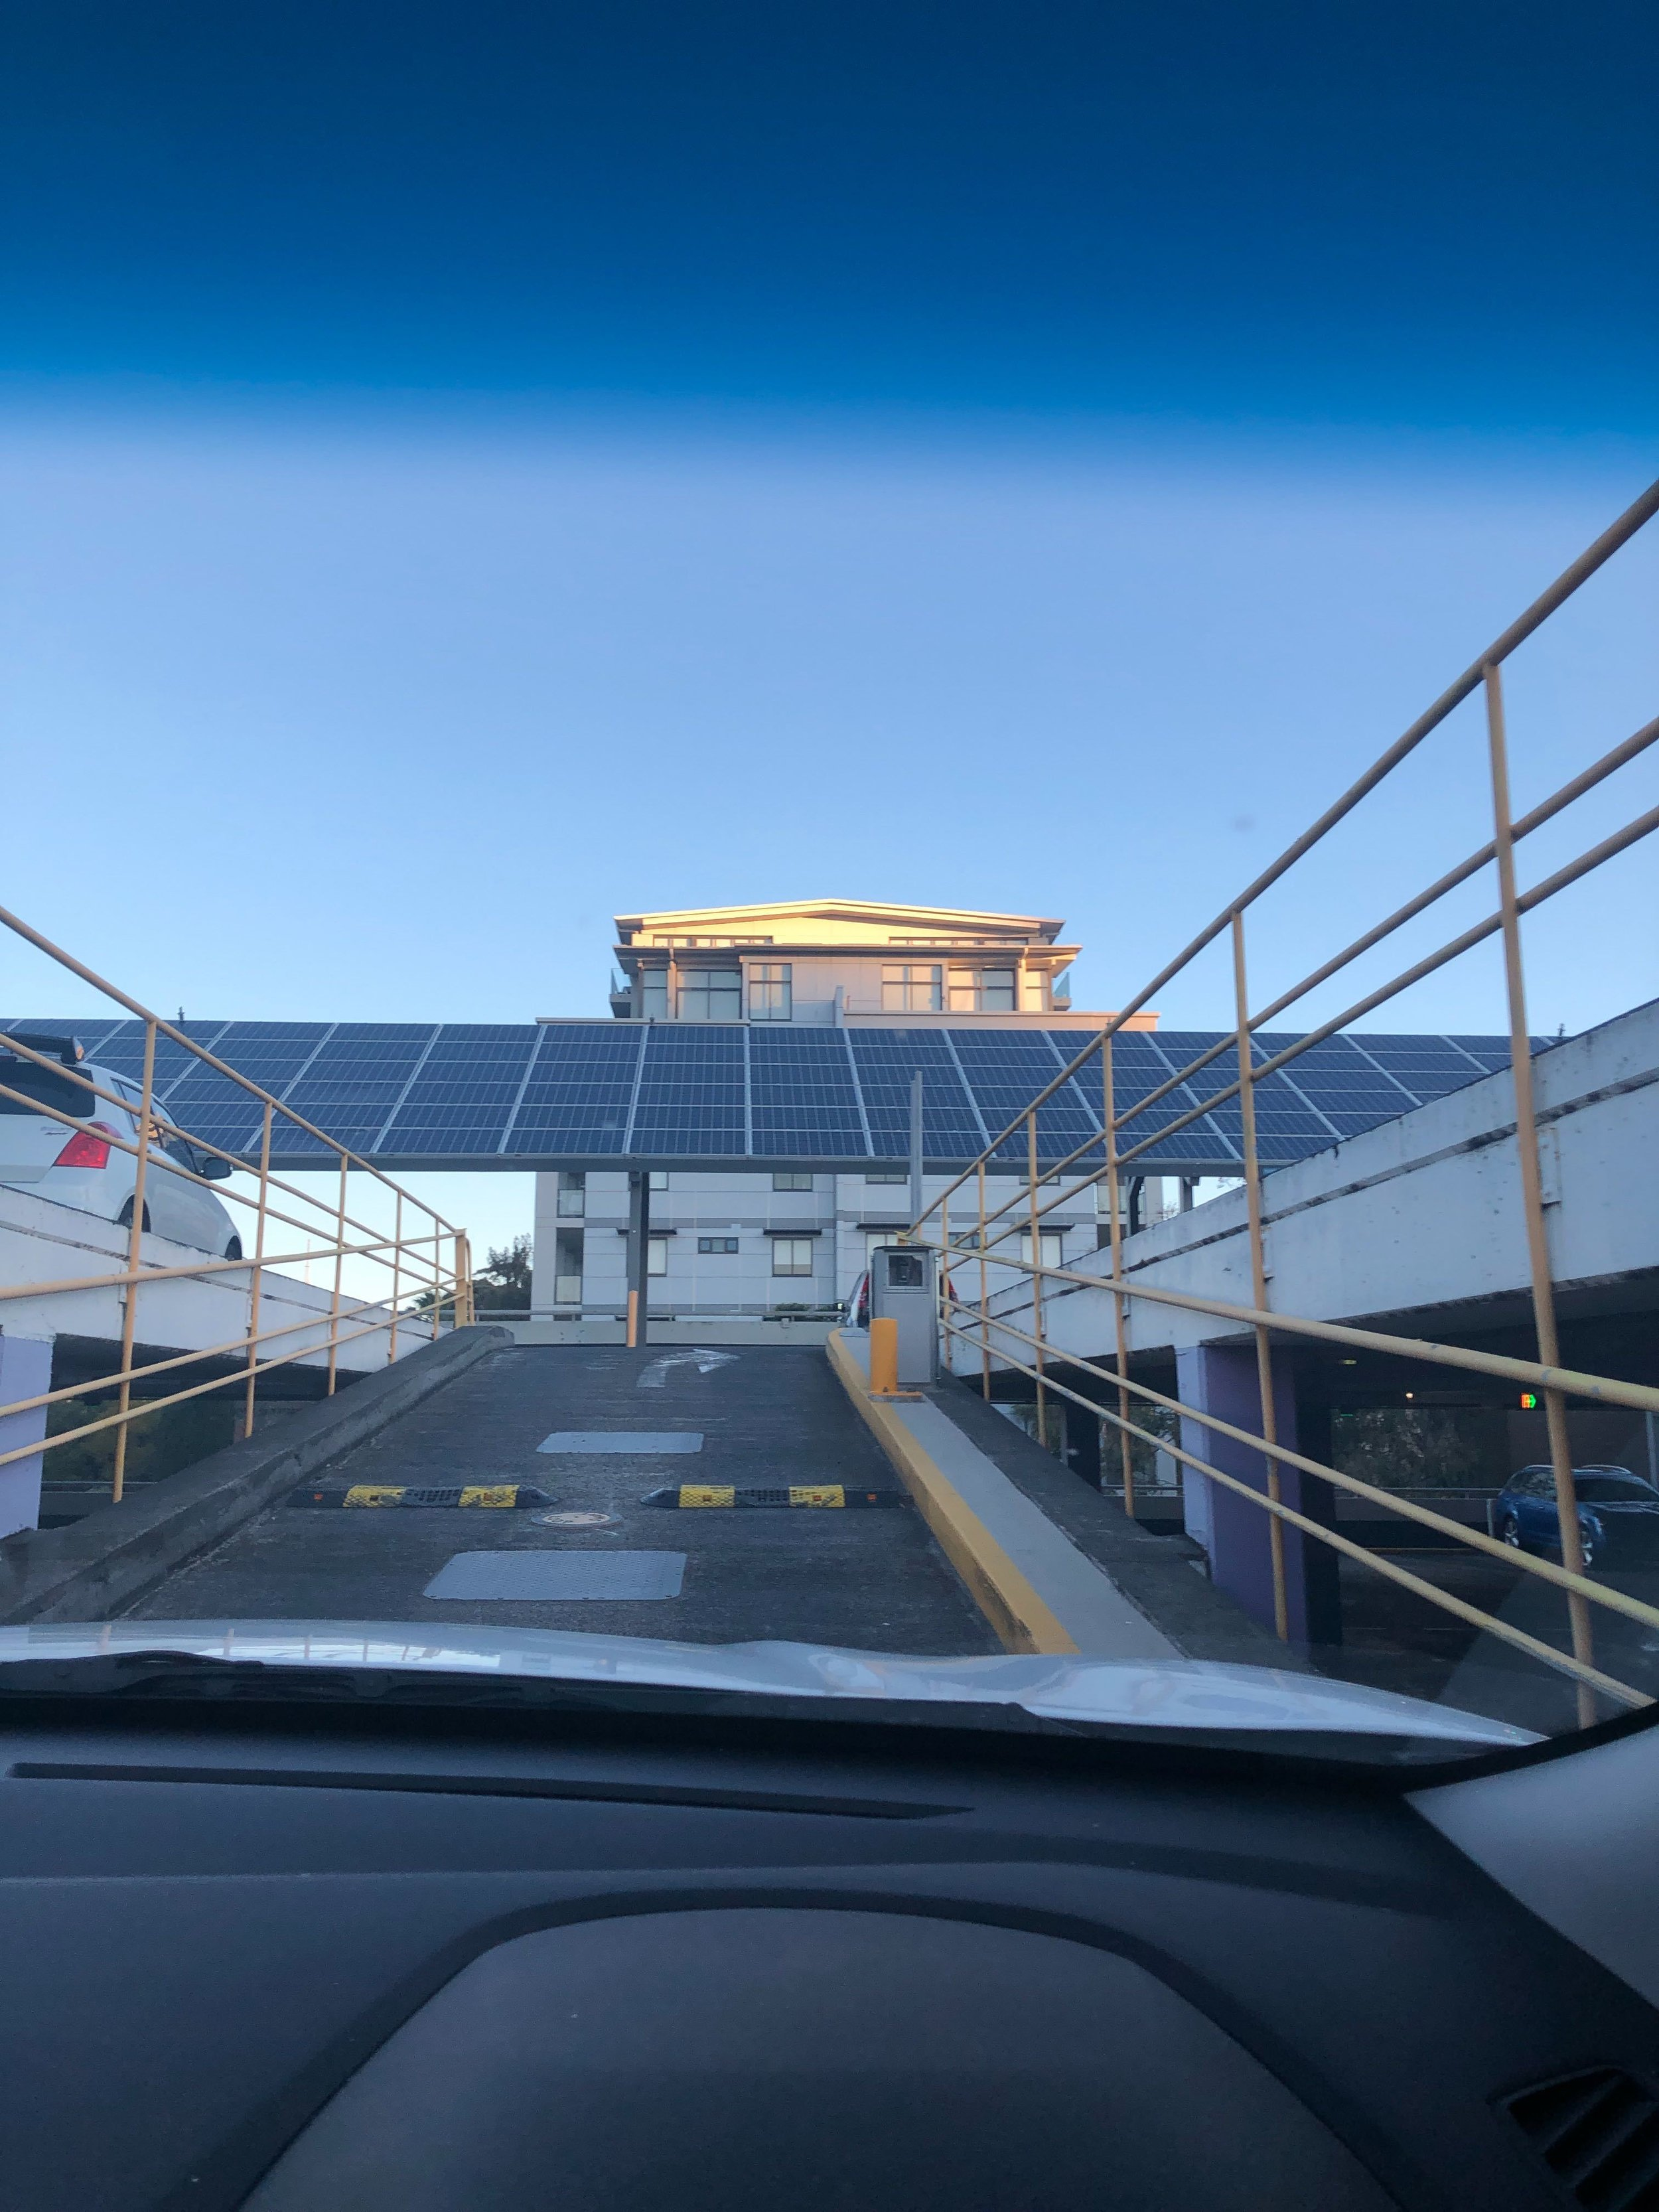 Continue on up the ramps until you see rooftop parking with the satellites. Turn Right and immediately Turn Right again.